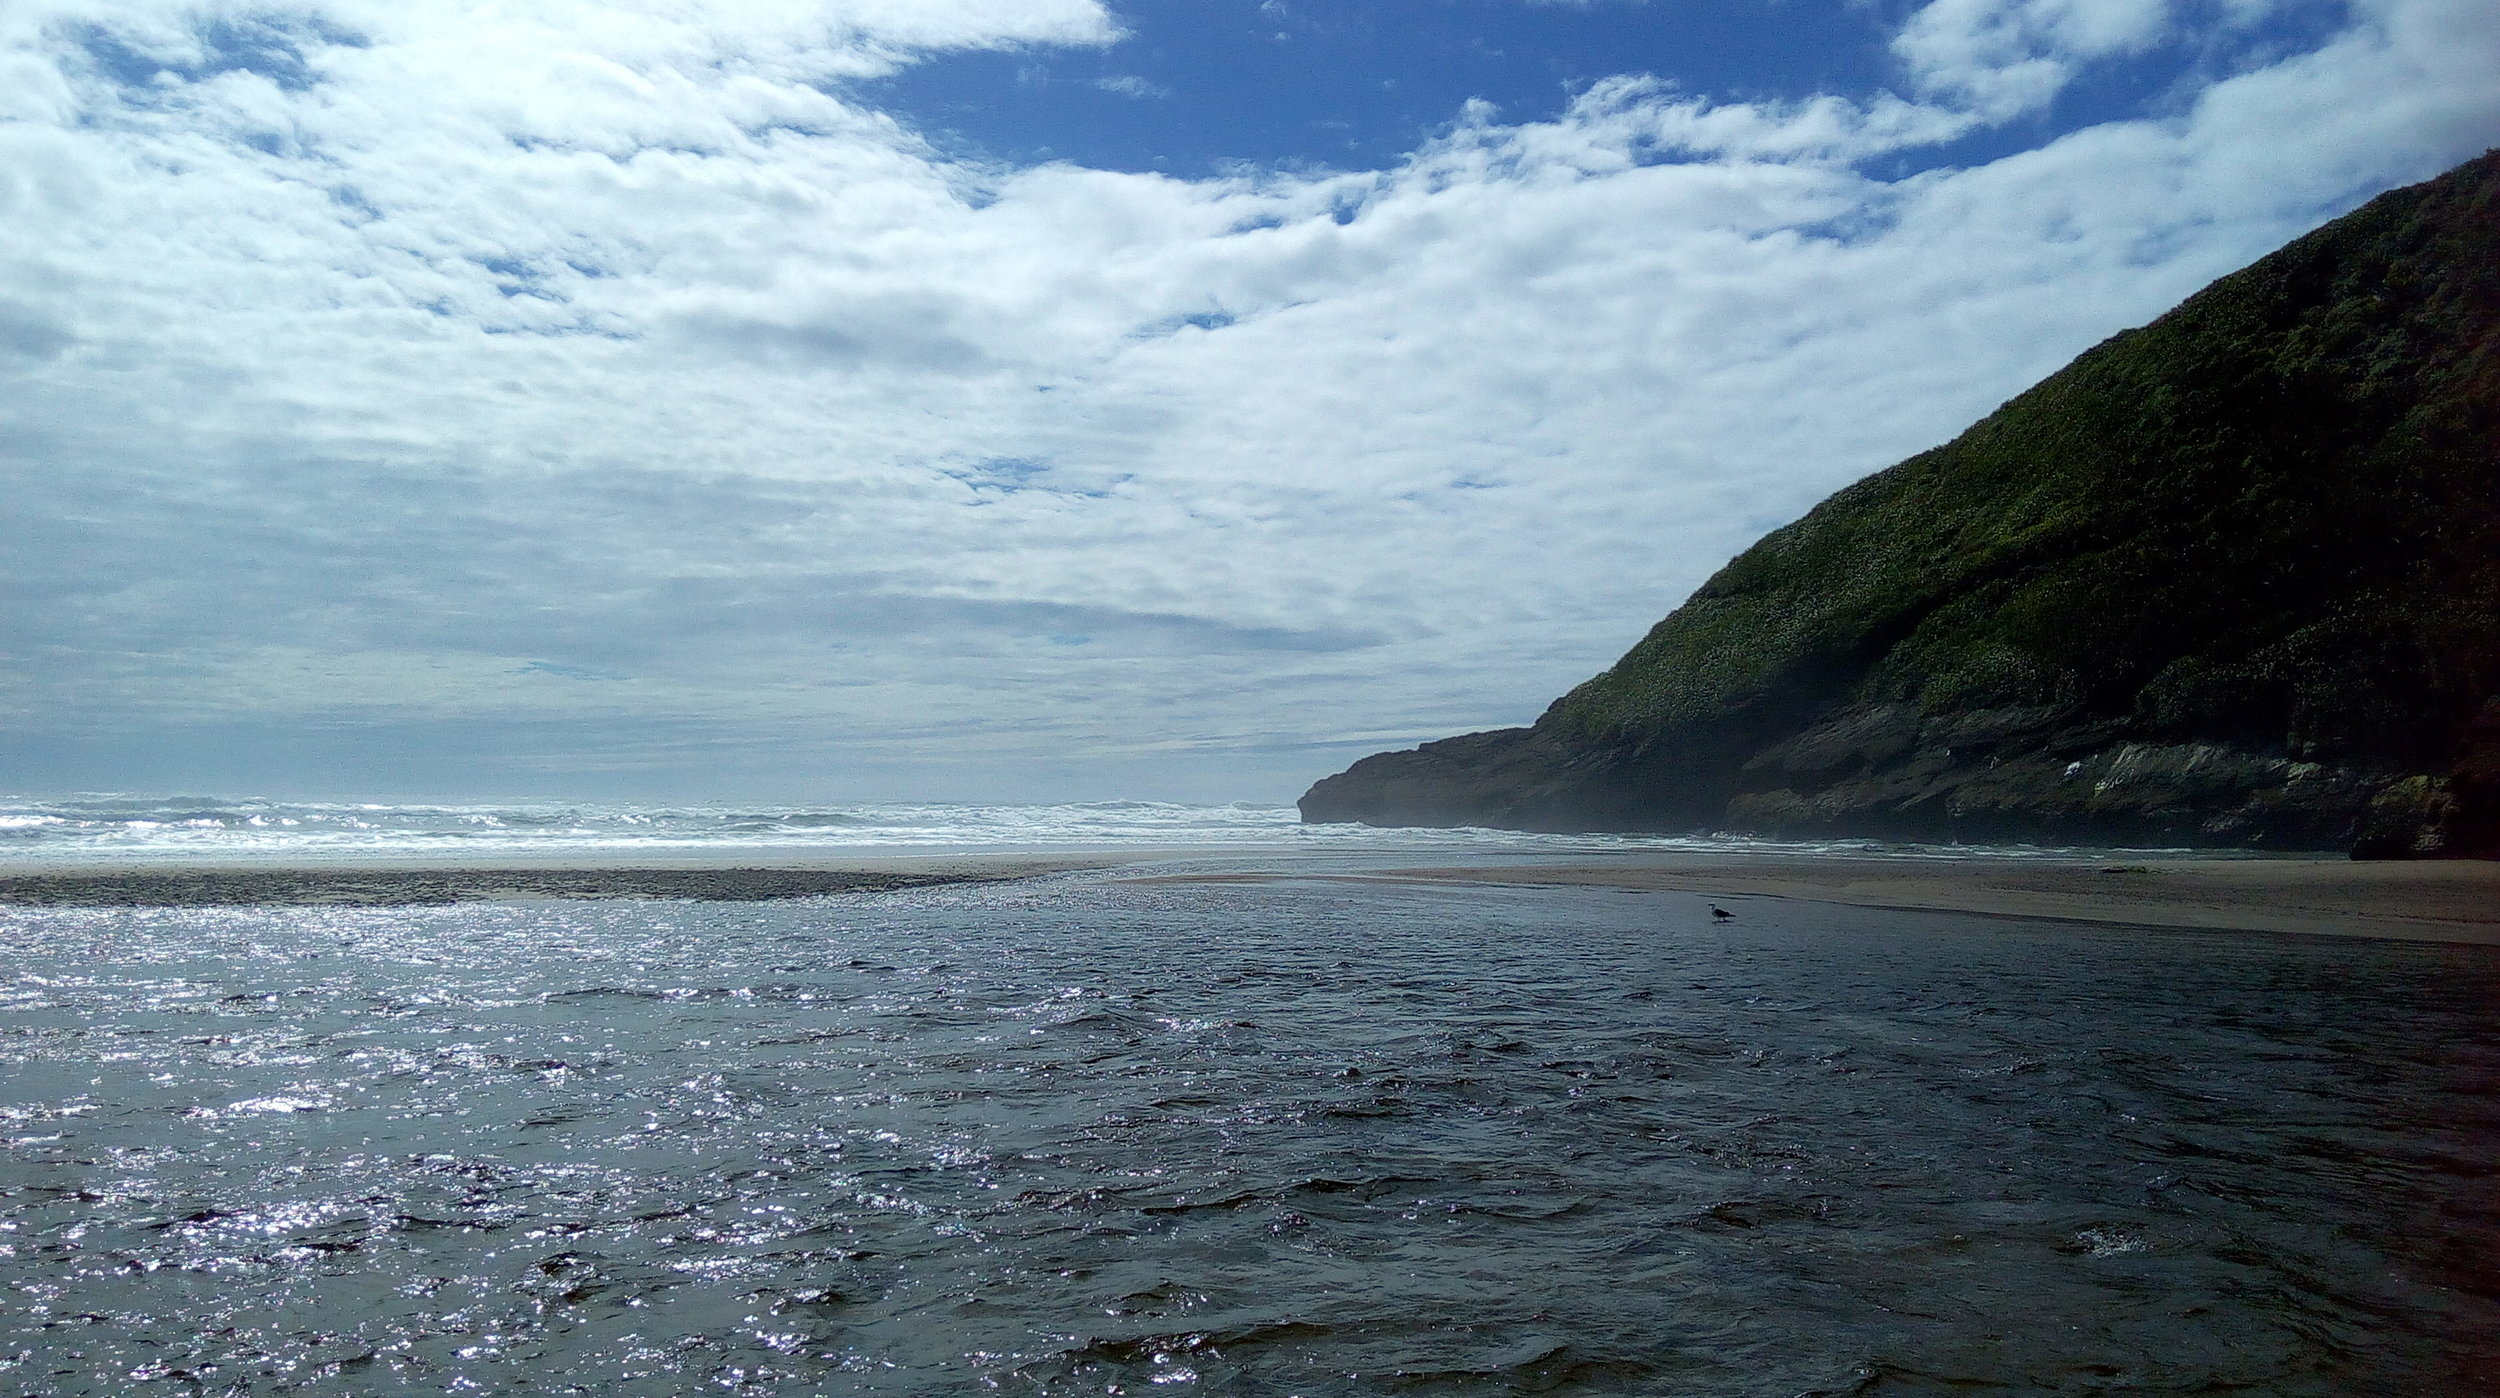 The Tasman sea at the Heaphy river mouth.